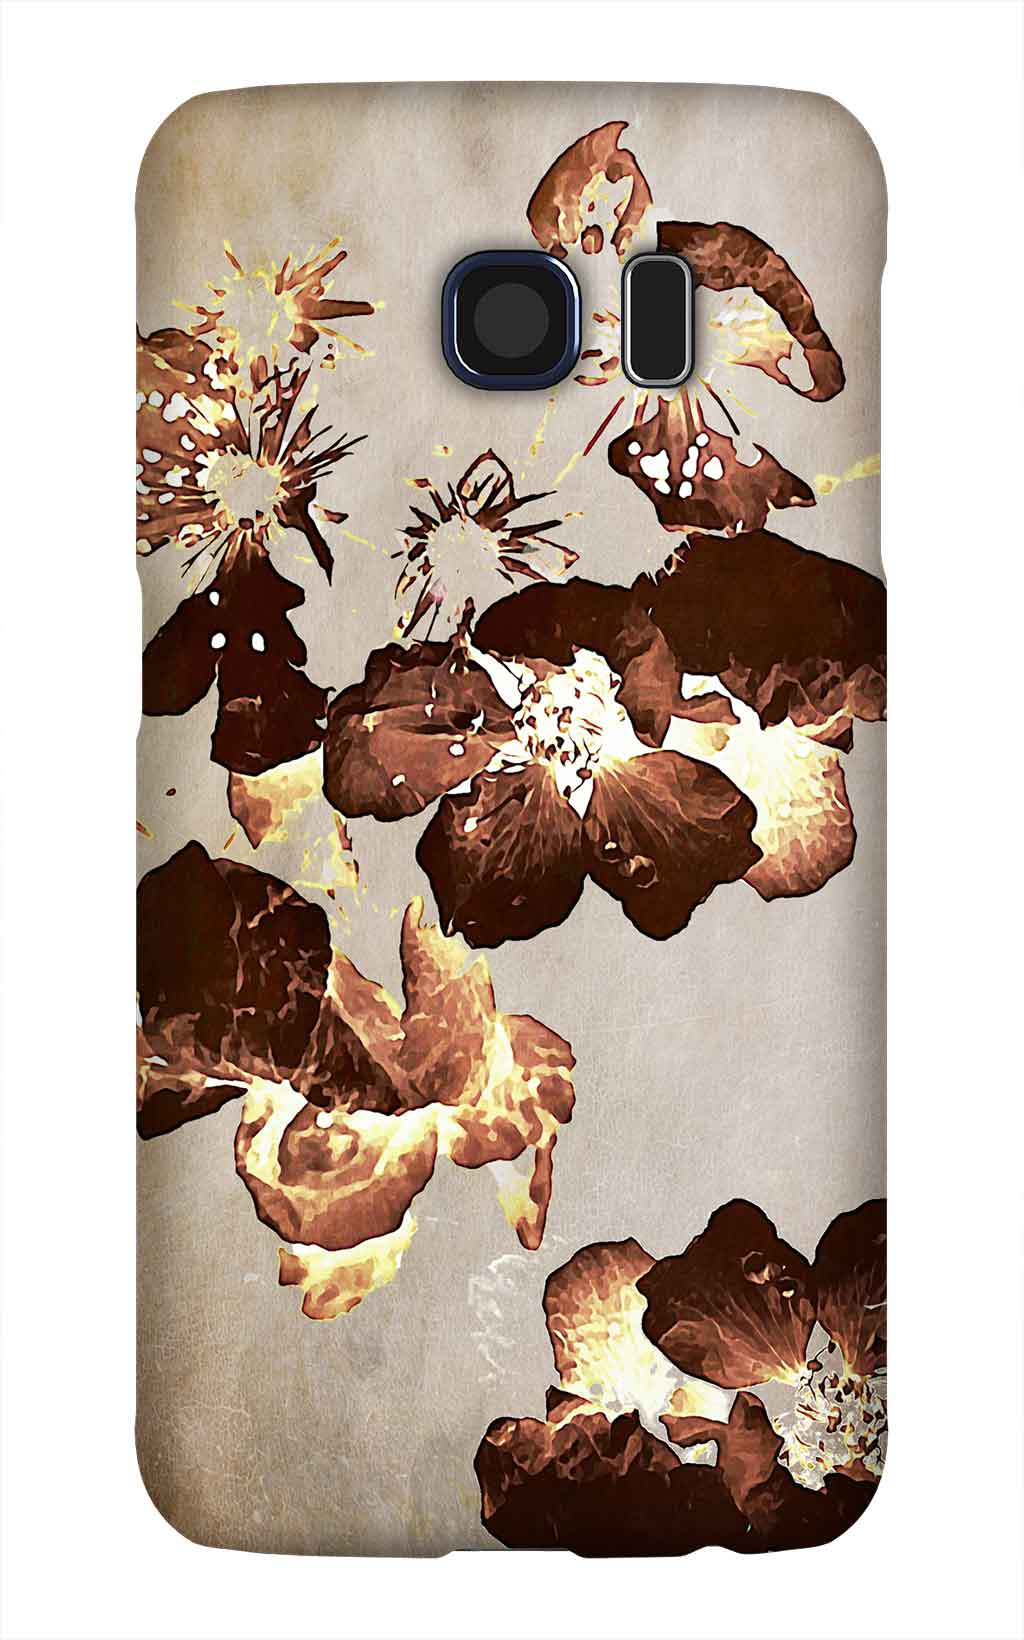 Product, Cellphone Case: Possibility – Brown blackberry blossoms on beige background